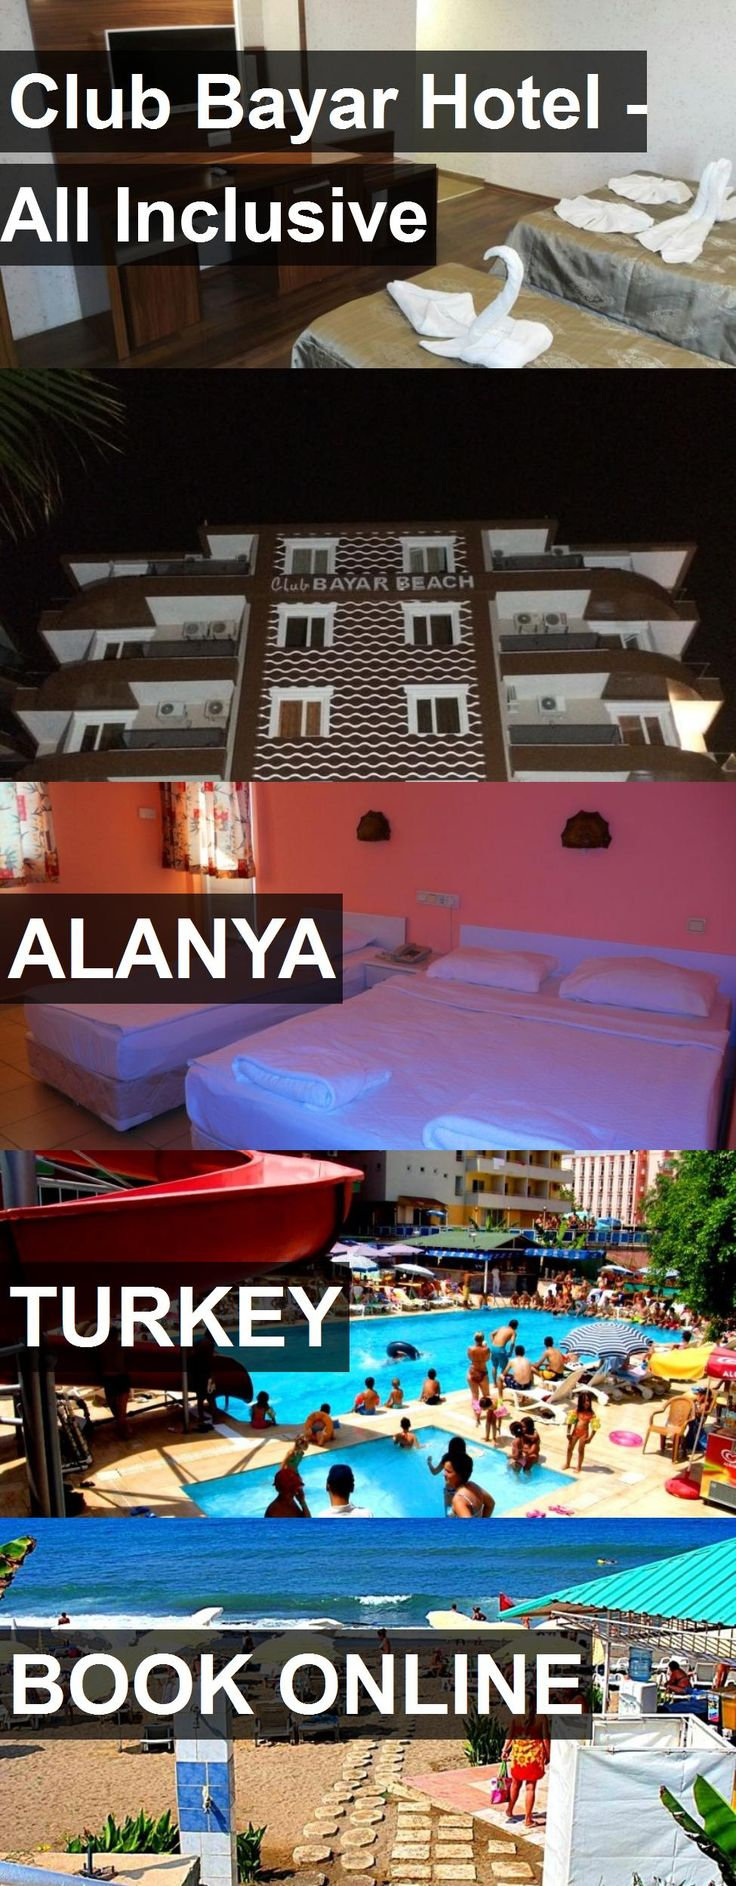 Hotel Club Bayar Hotel - All Inclusive in Alanya, Turkey. For more information, photos, reviews and best prices please follow the link. #Turkey #Alanya #hotel #travel #vacation